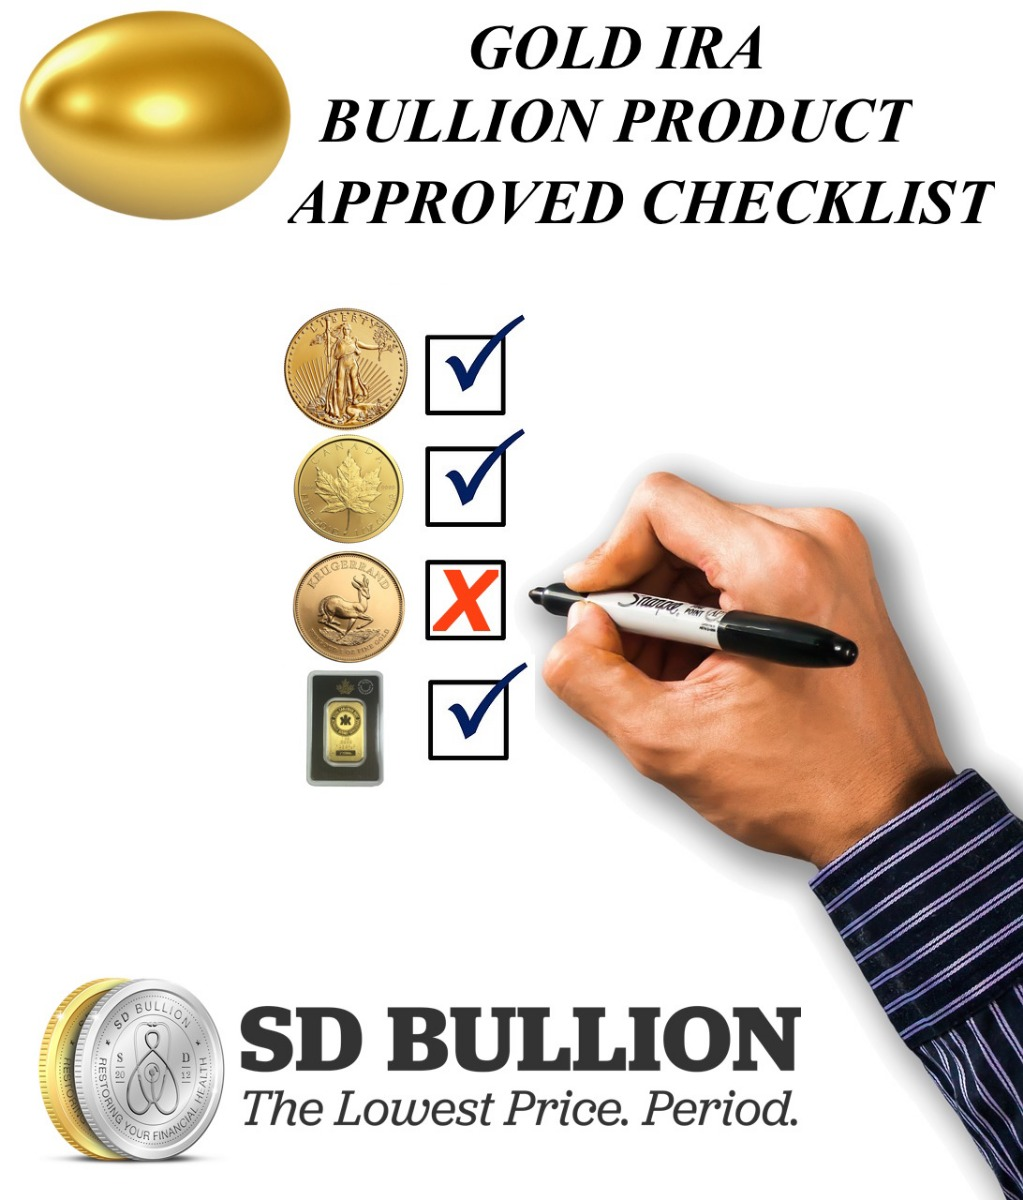 IRA Approved Gold Bullion Coins, Bars | Gold IRA Approved